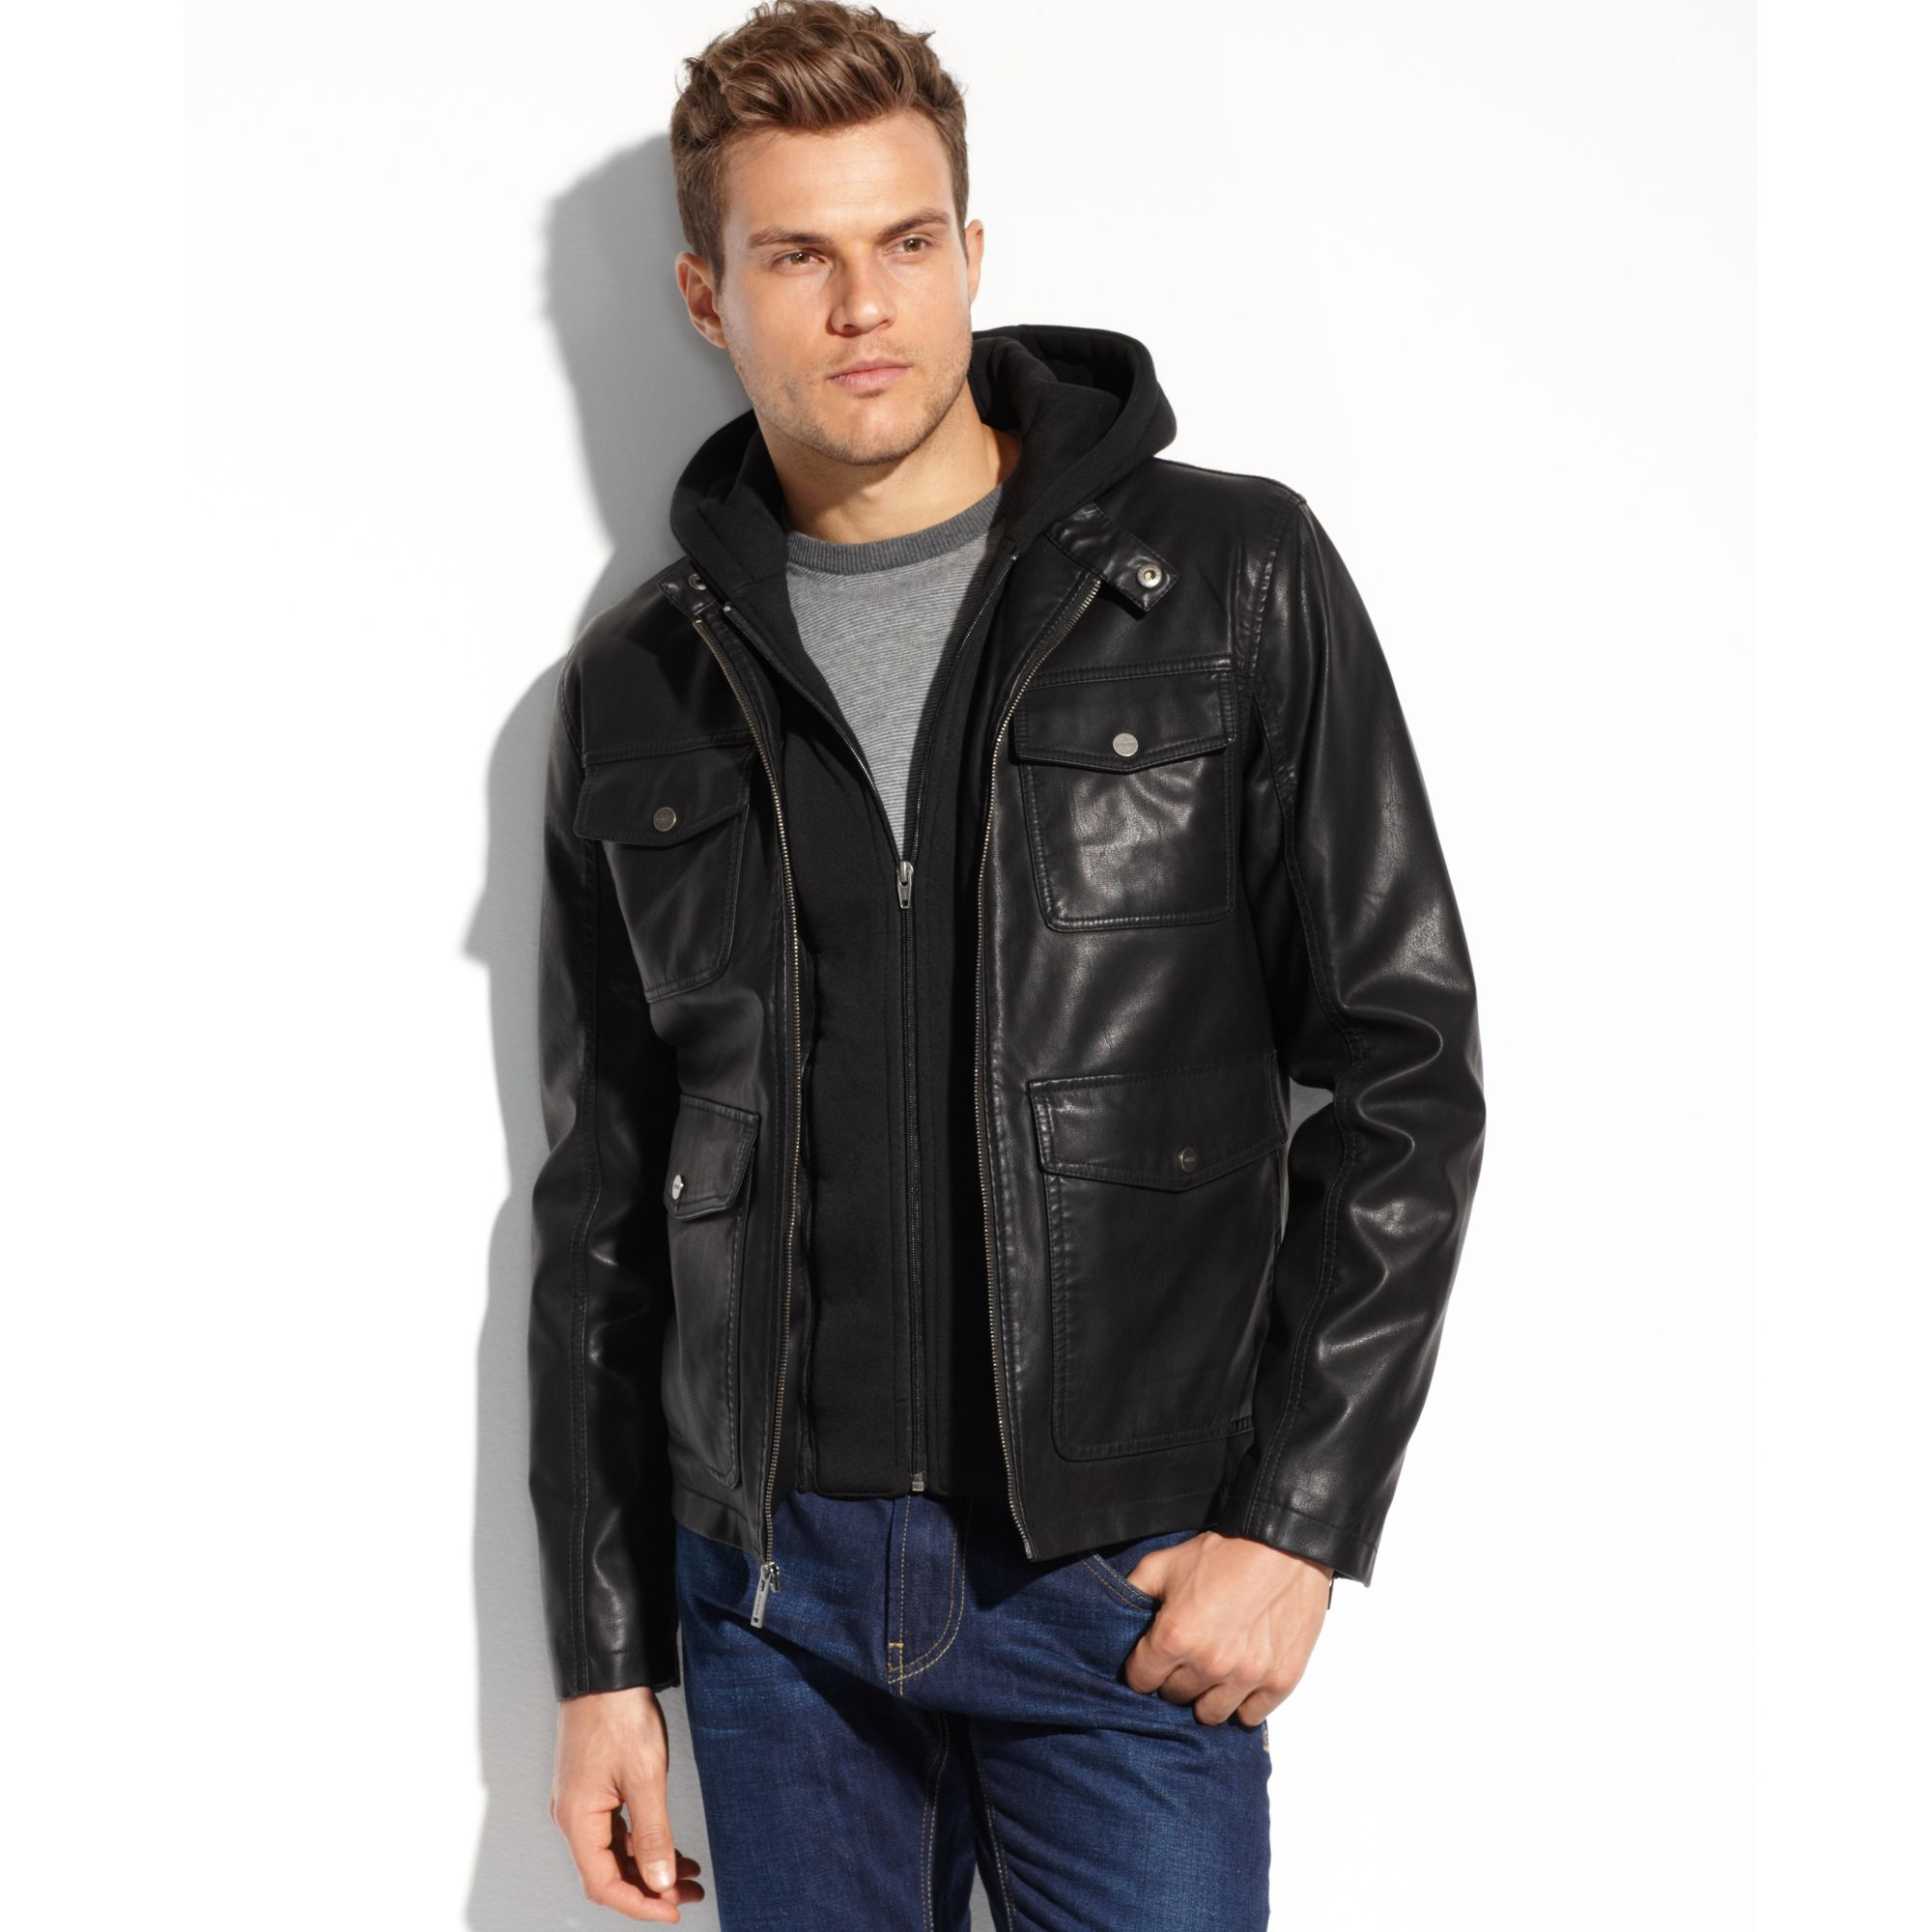 Guess leather jackets for men